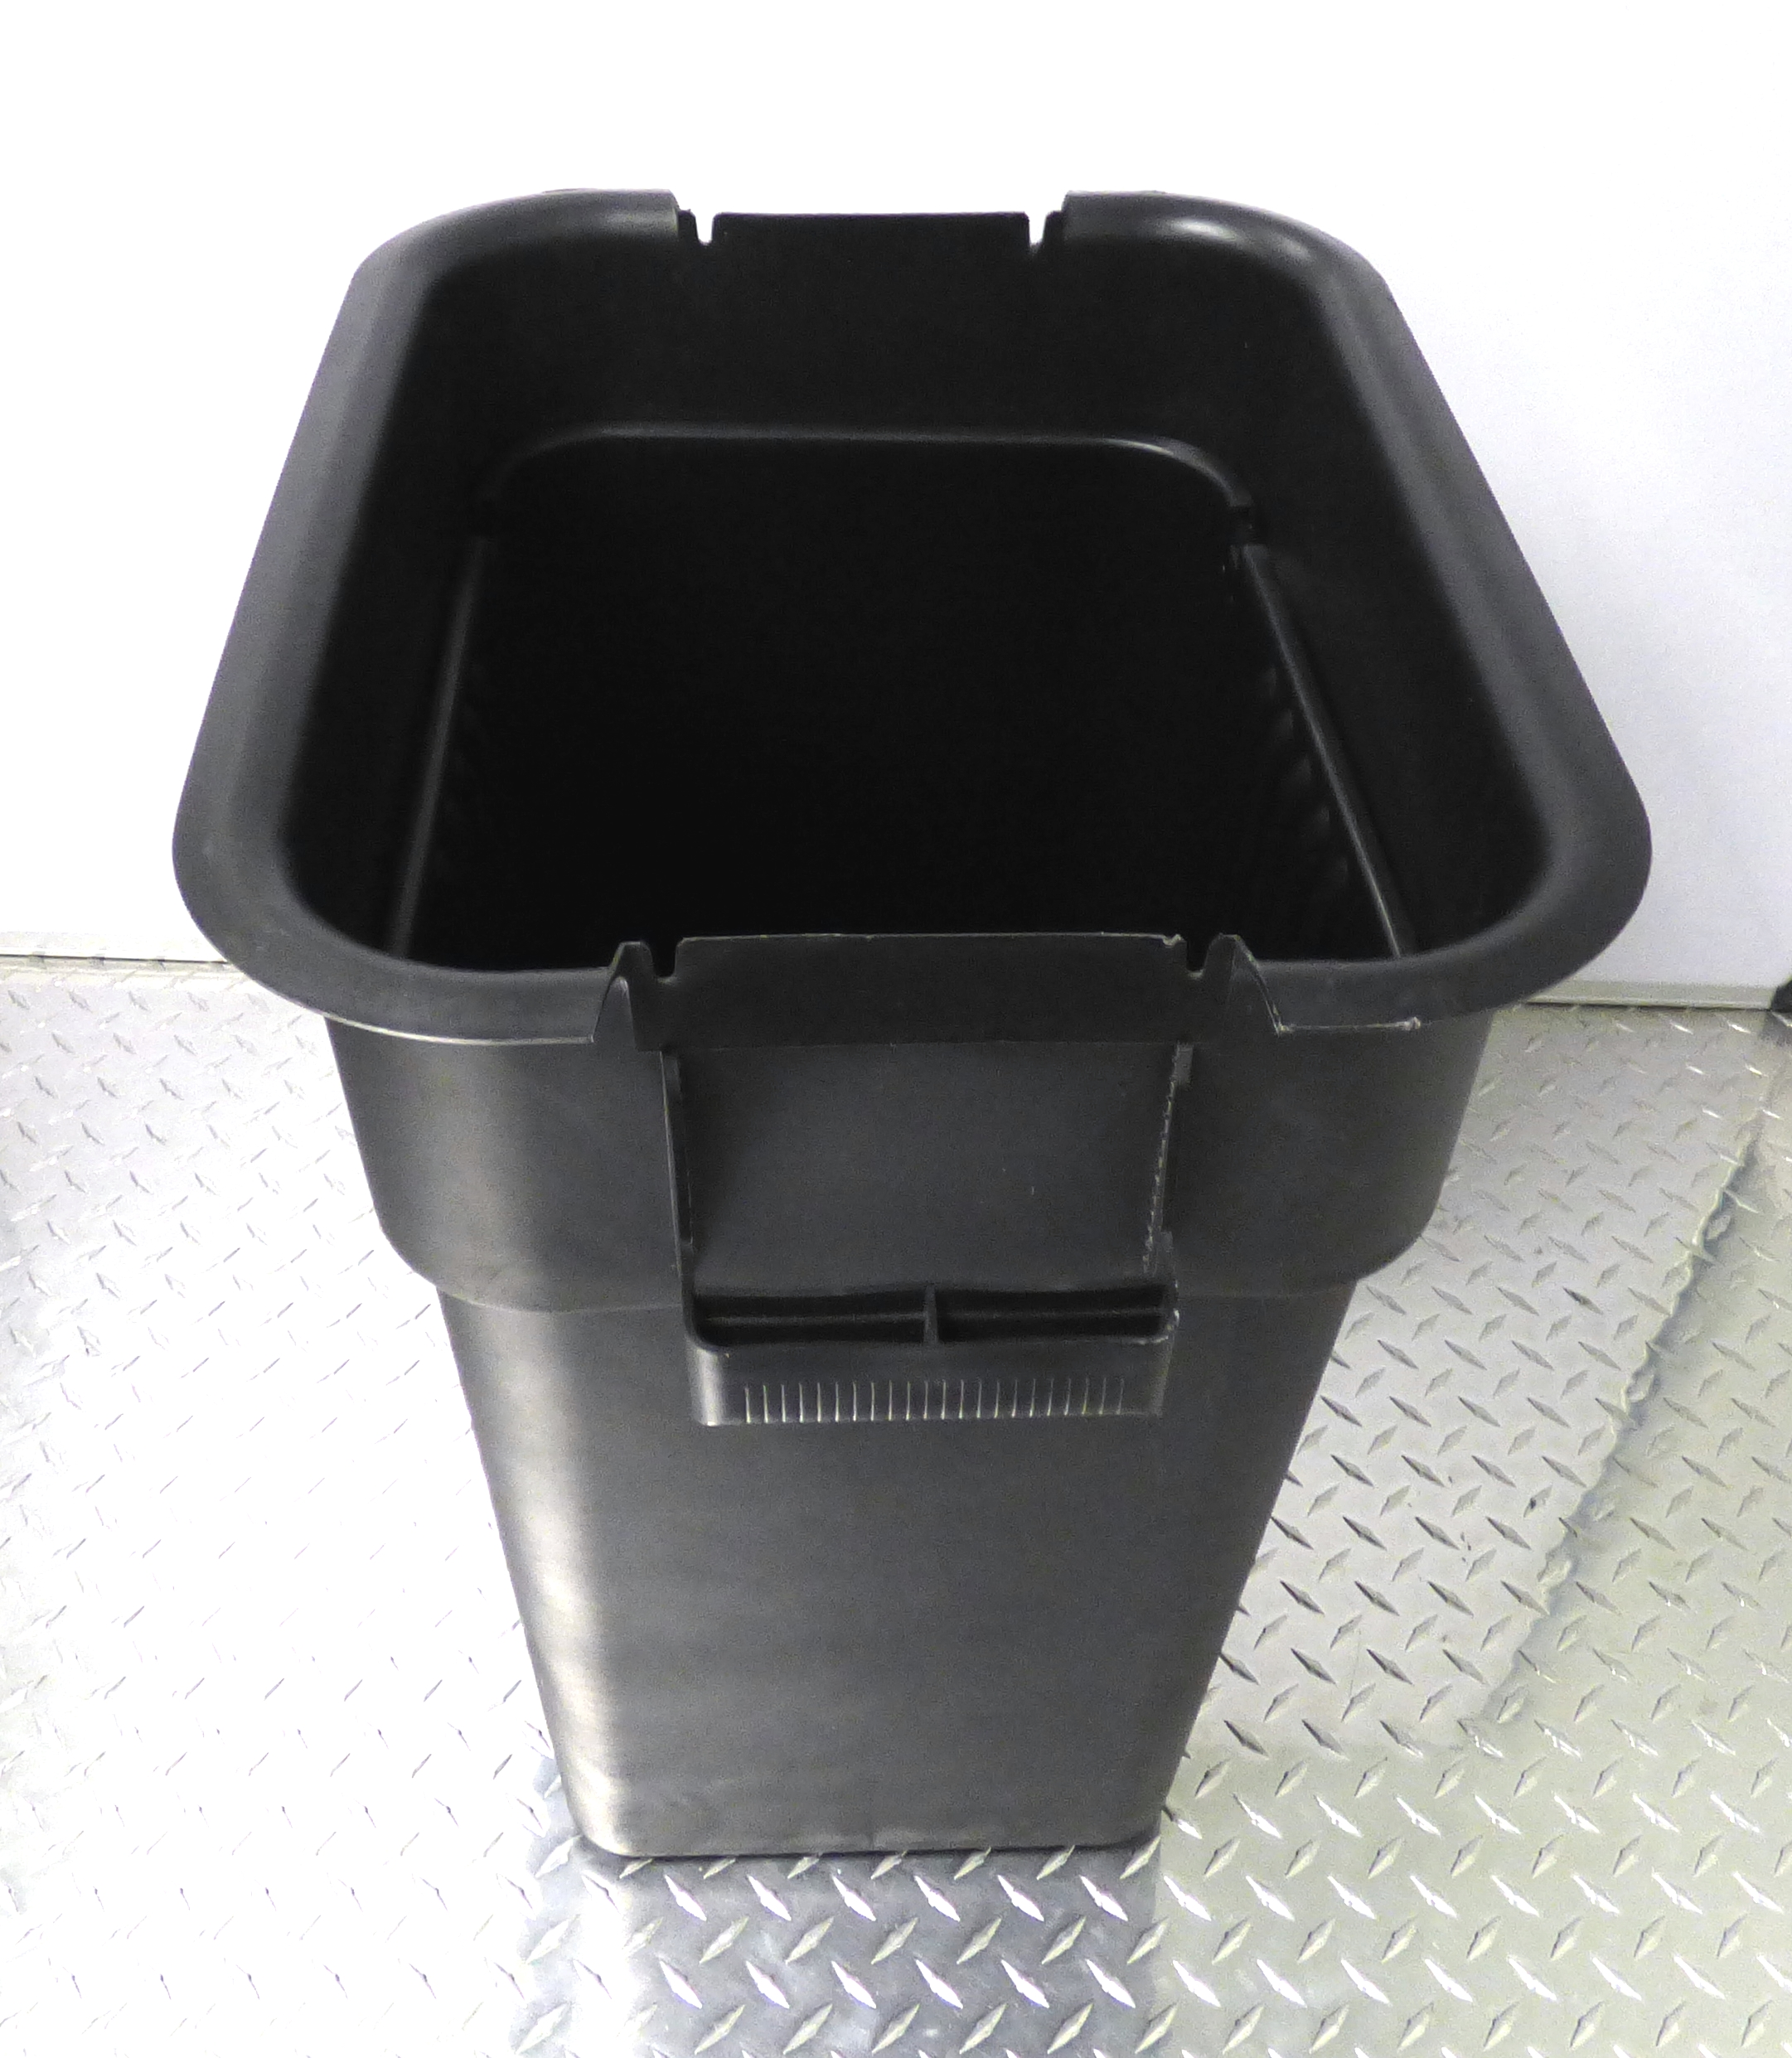 OEM 532400226 Hard Grass Catcher Container Bag Set of 2